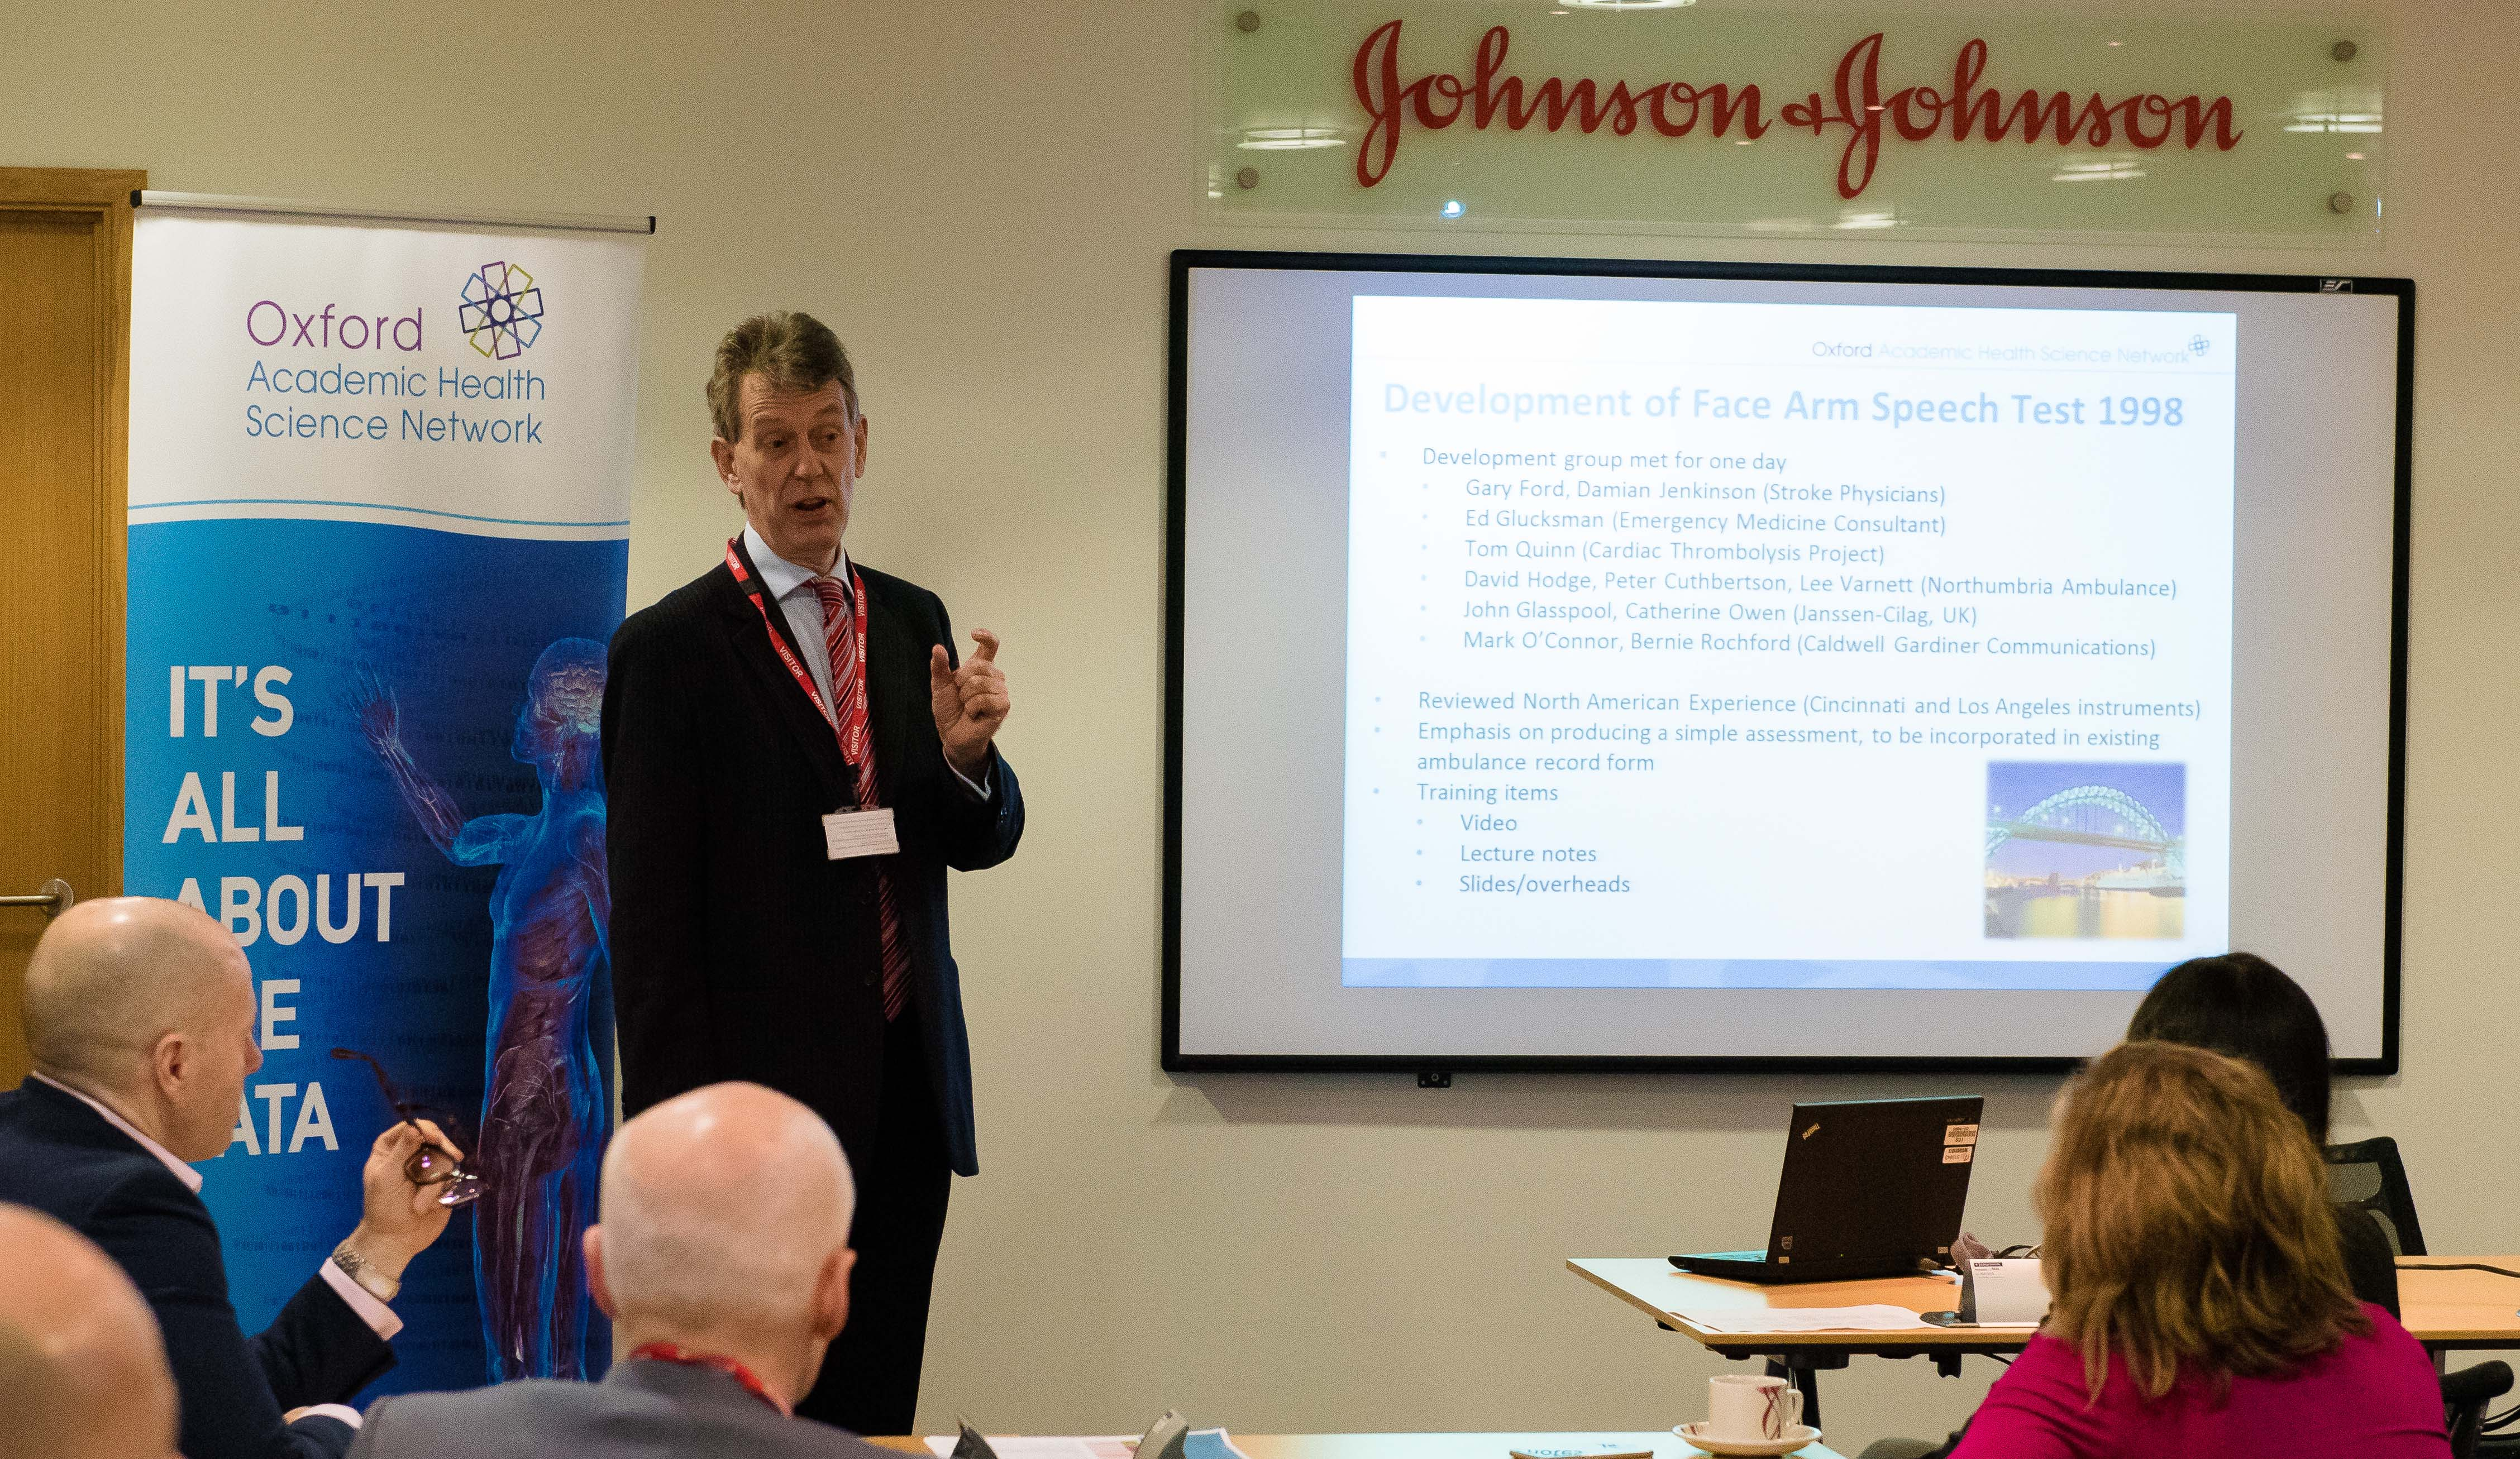 Oxford AHSN Chief Exec Prof Gary Ford speaking at joint meeting with Johnson & Johnson